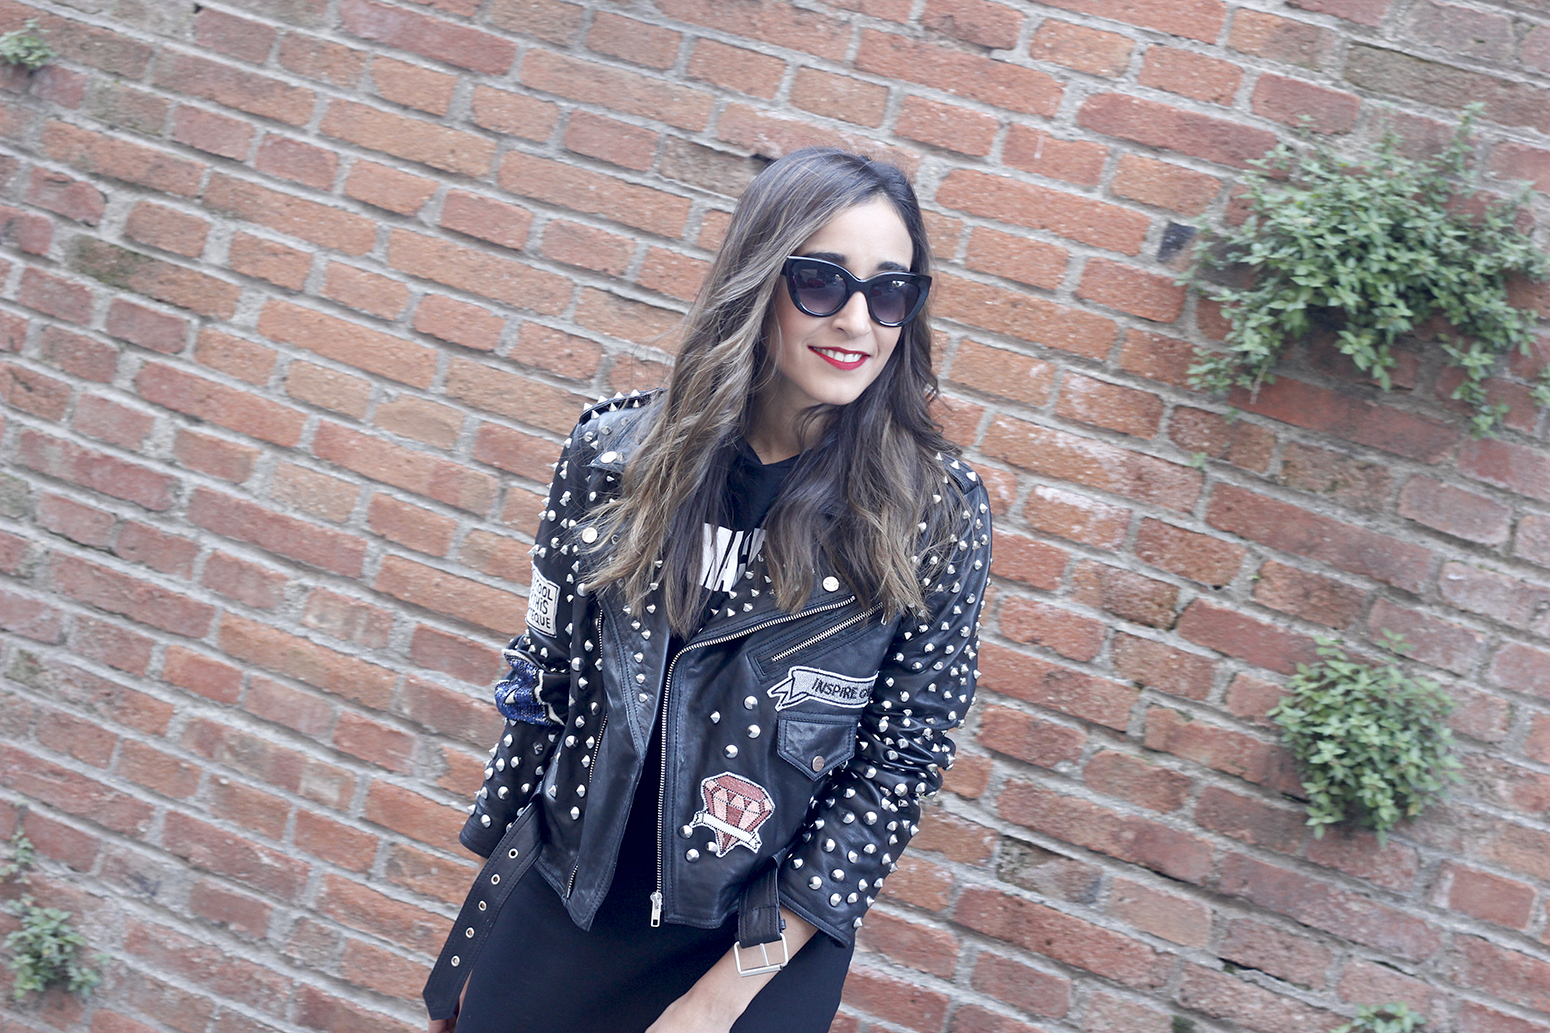 Leather jacket with studs and patches black skirt heels style fashion outfit18